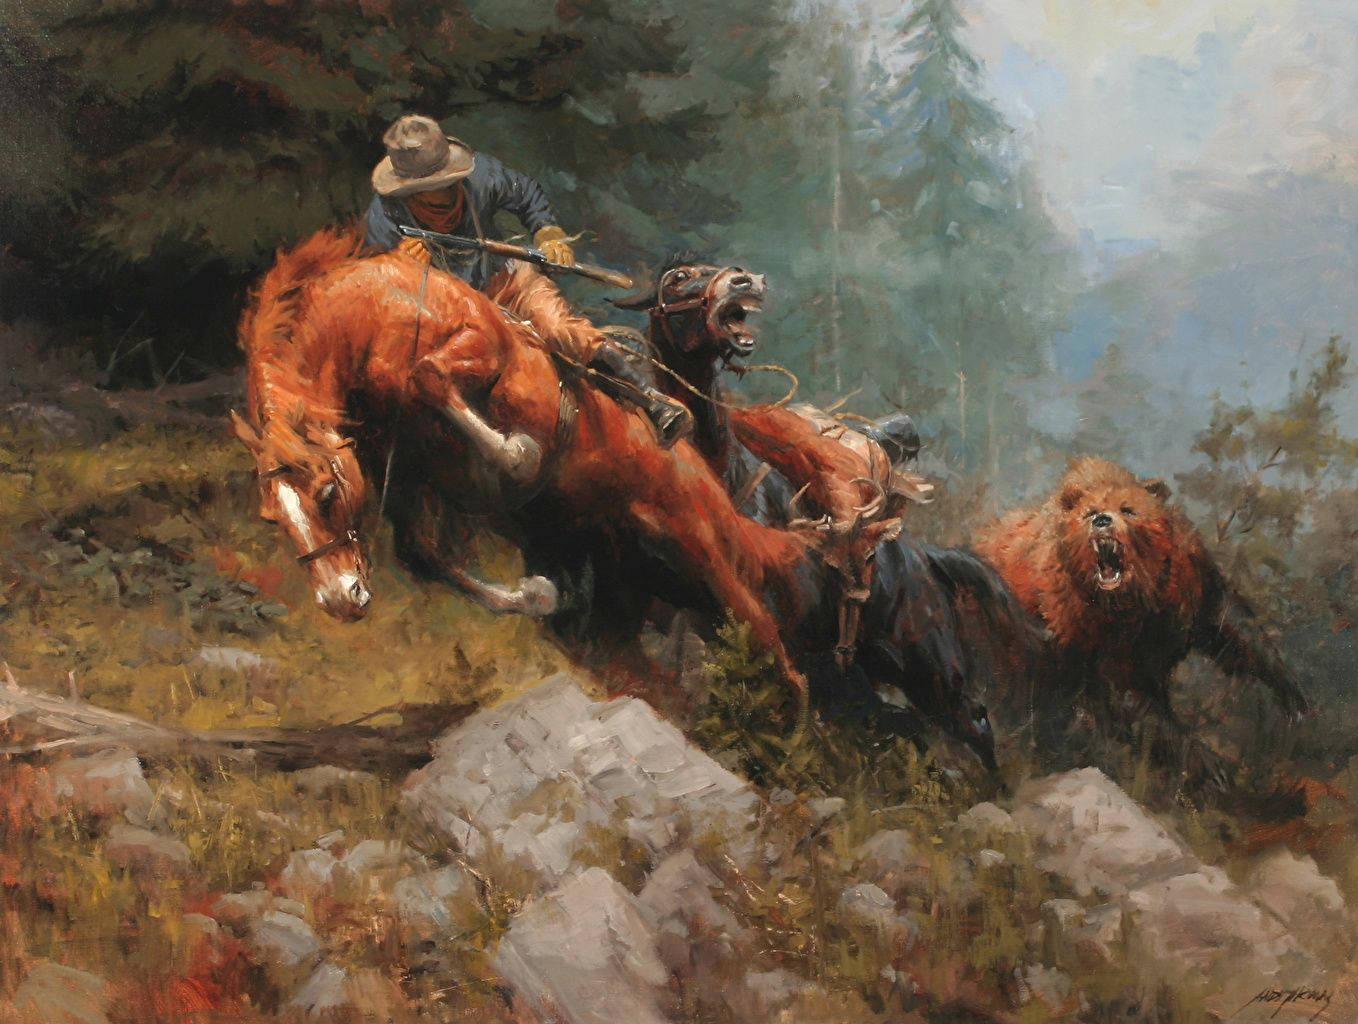 1358x1024 Wallpapers Horses Man Andy Thomas, Grizzly Mountain Pictorial art